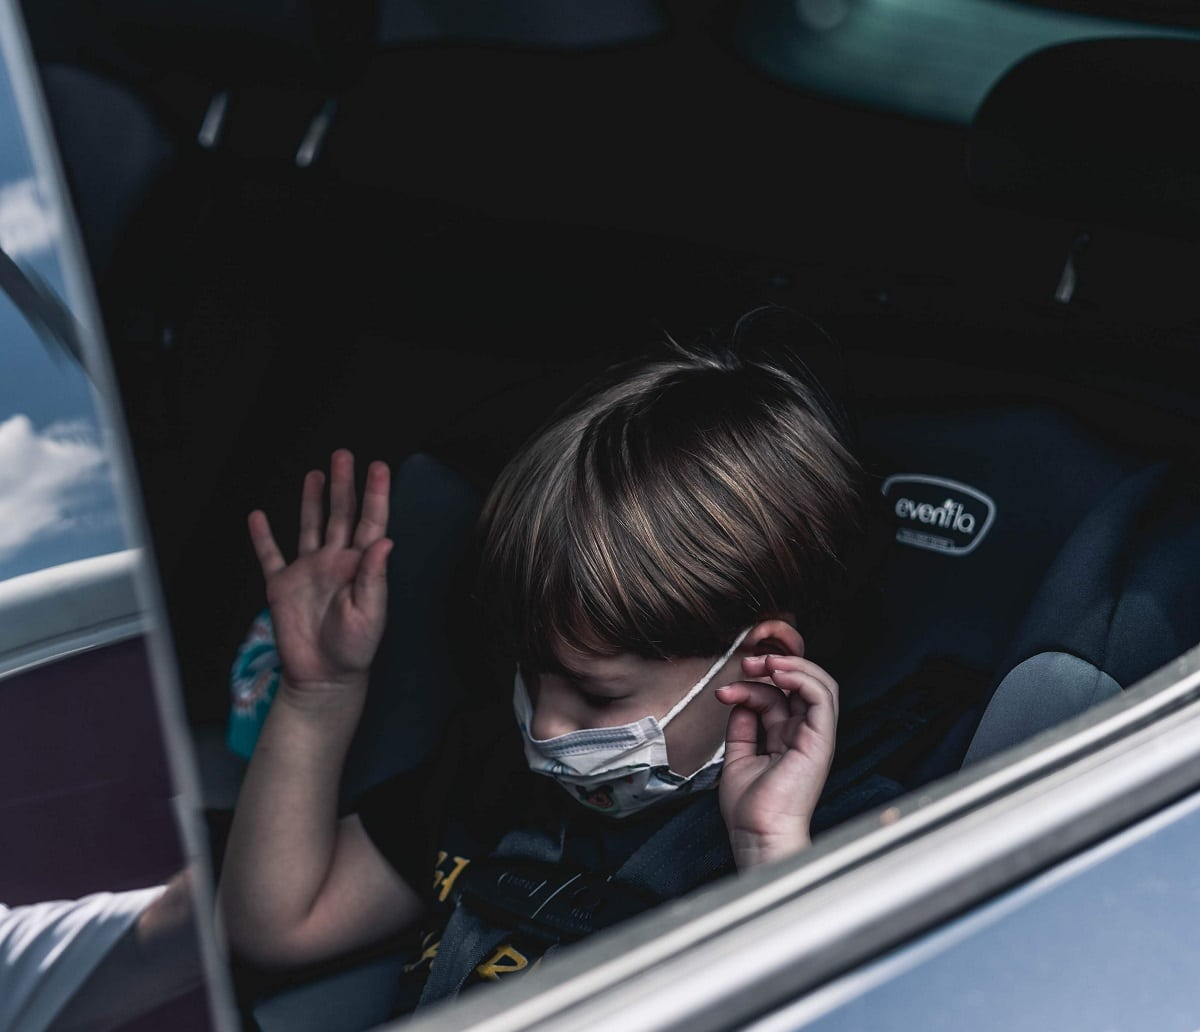 car sefty - Car Seat Safety for Kids Every Parent Should Know